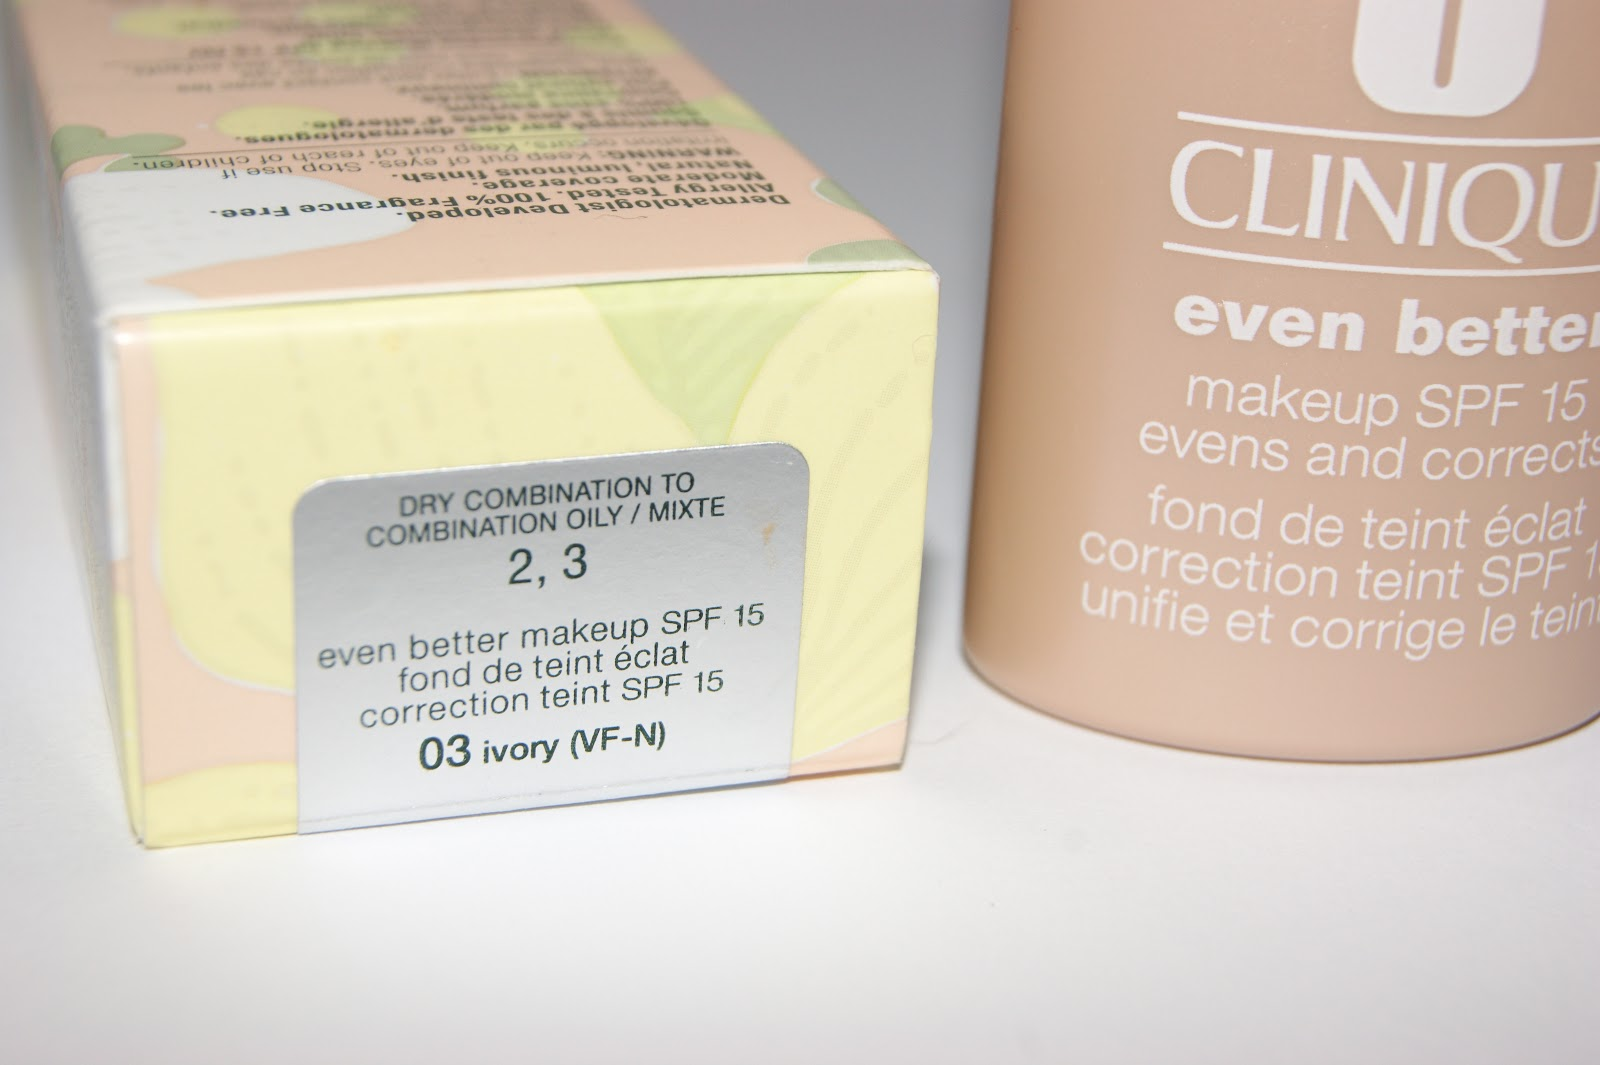 Clinique even better makeup foundation review swatches before - I Was Best Matched To Clinique Even Better Foundation Which Is Aimed At Skin Types Two And Three